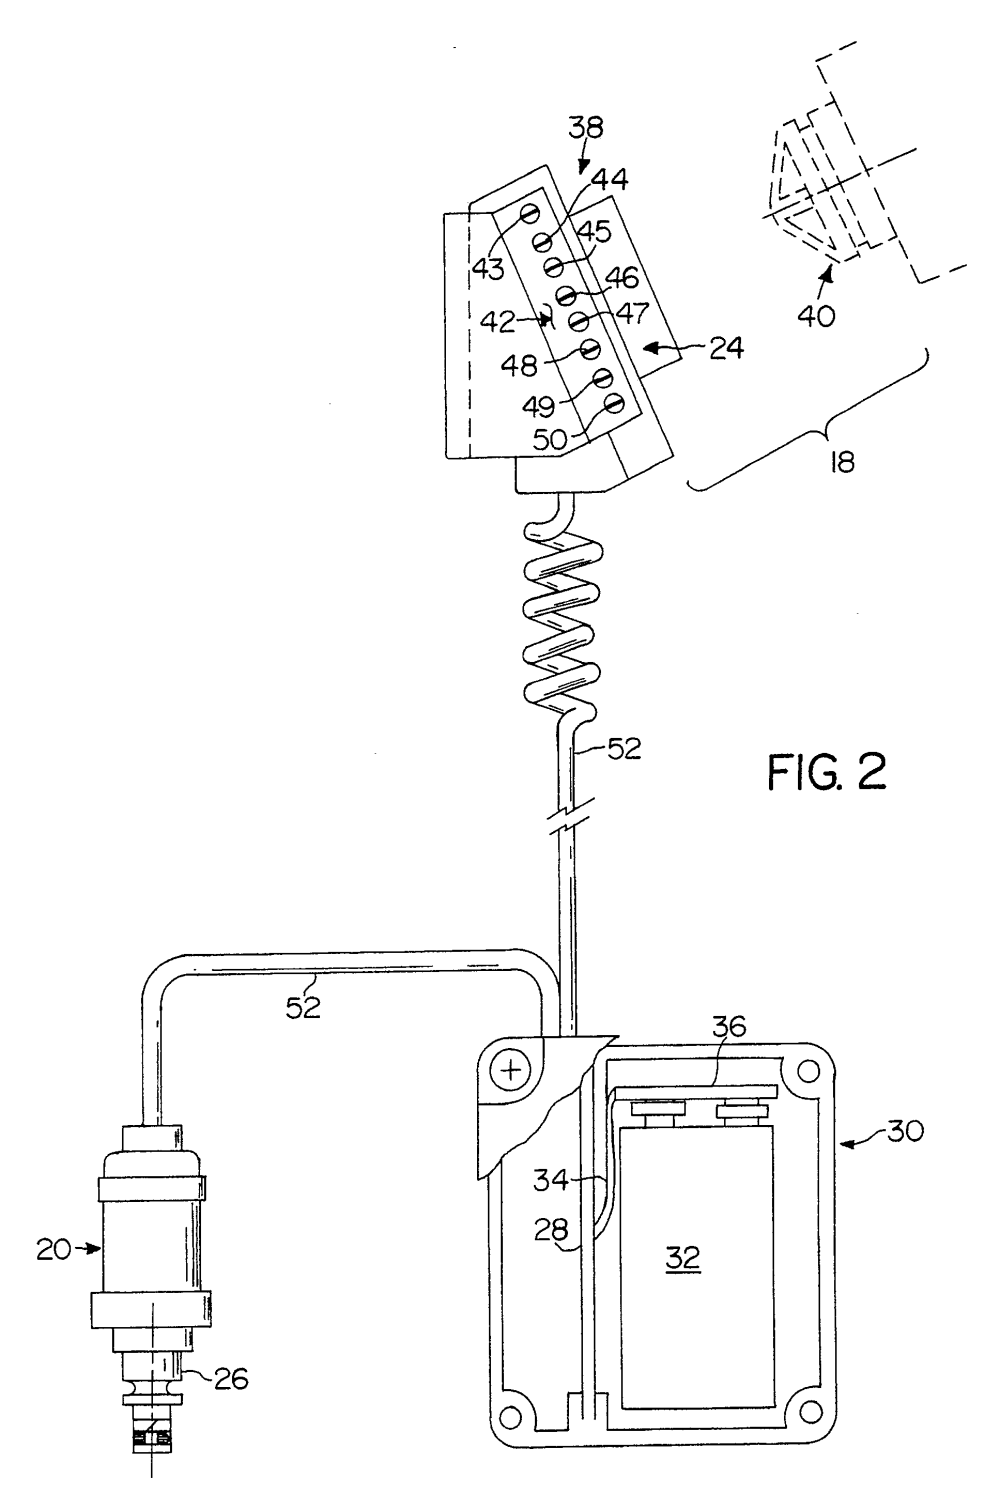 medium resolution of ep0428131a2 pressure monitoring device for self contained breathing apparatus google patents